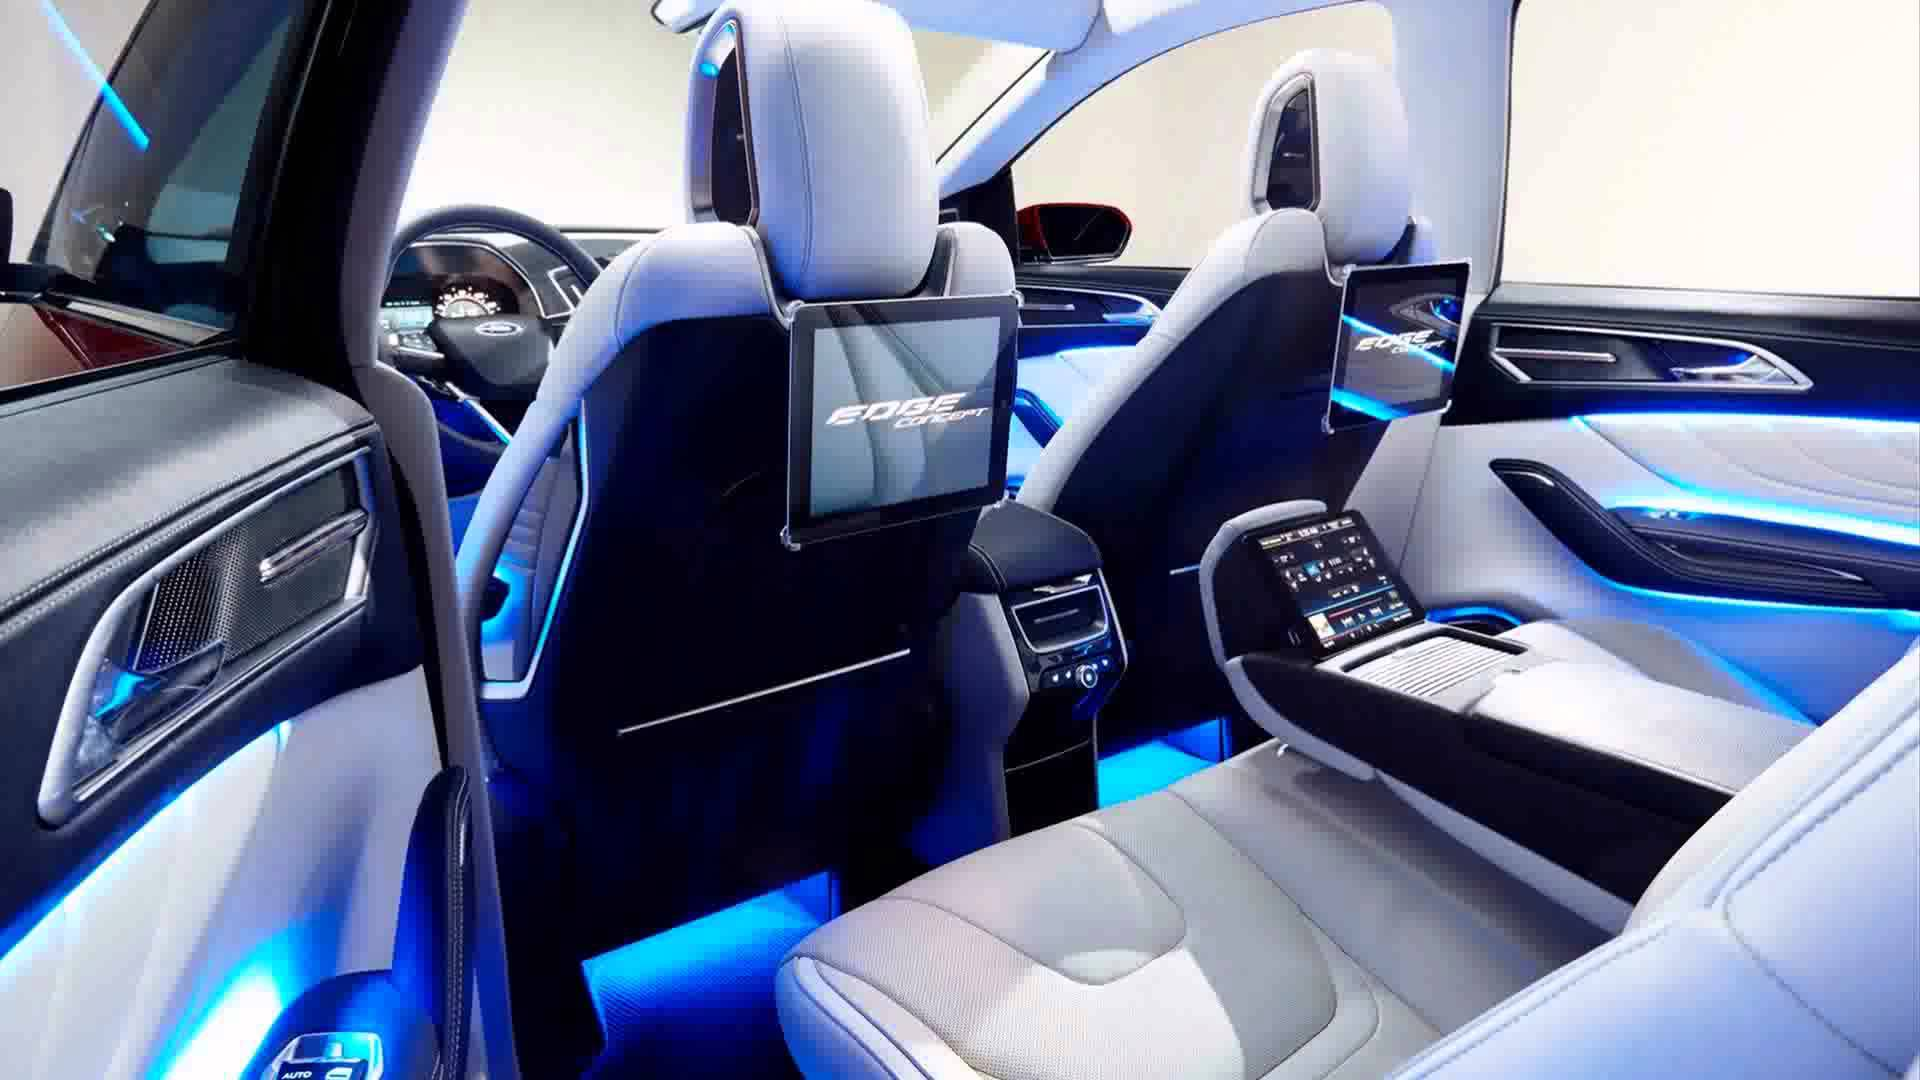 awesome-design-ofthe-white-seats-ideas-with-blue-lights-ideas-with-white-ceiling-as-the-ford-edge-2015-interior